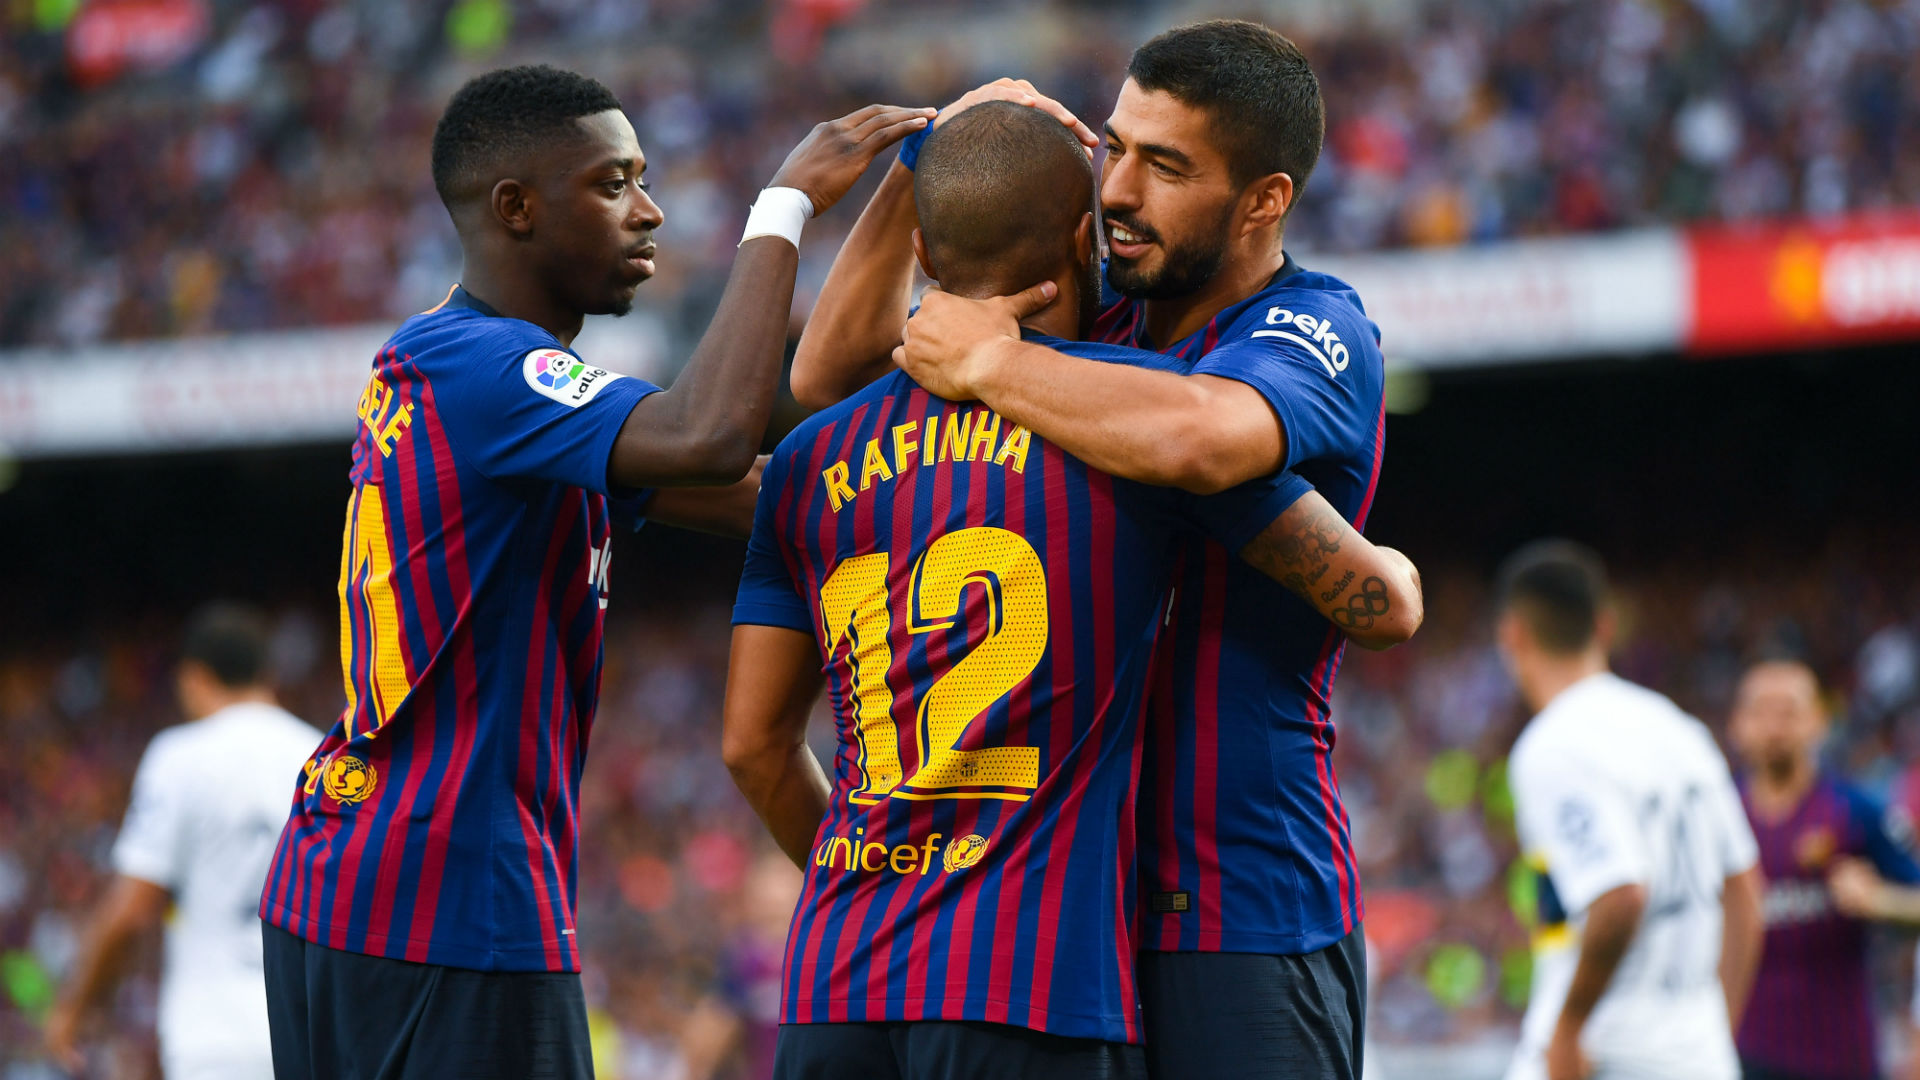 Barcelona 3 - 0 Alaves - Match Report & Highlights